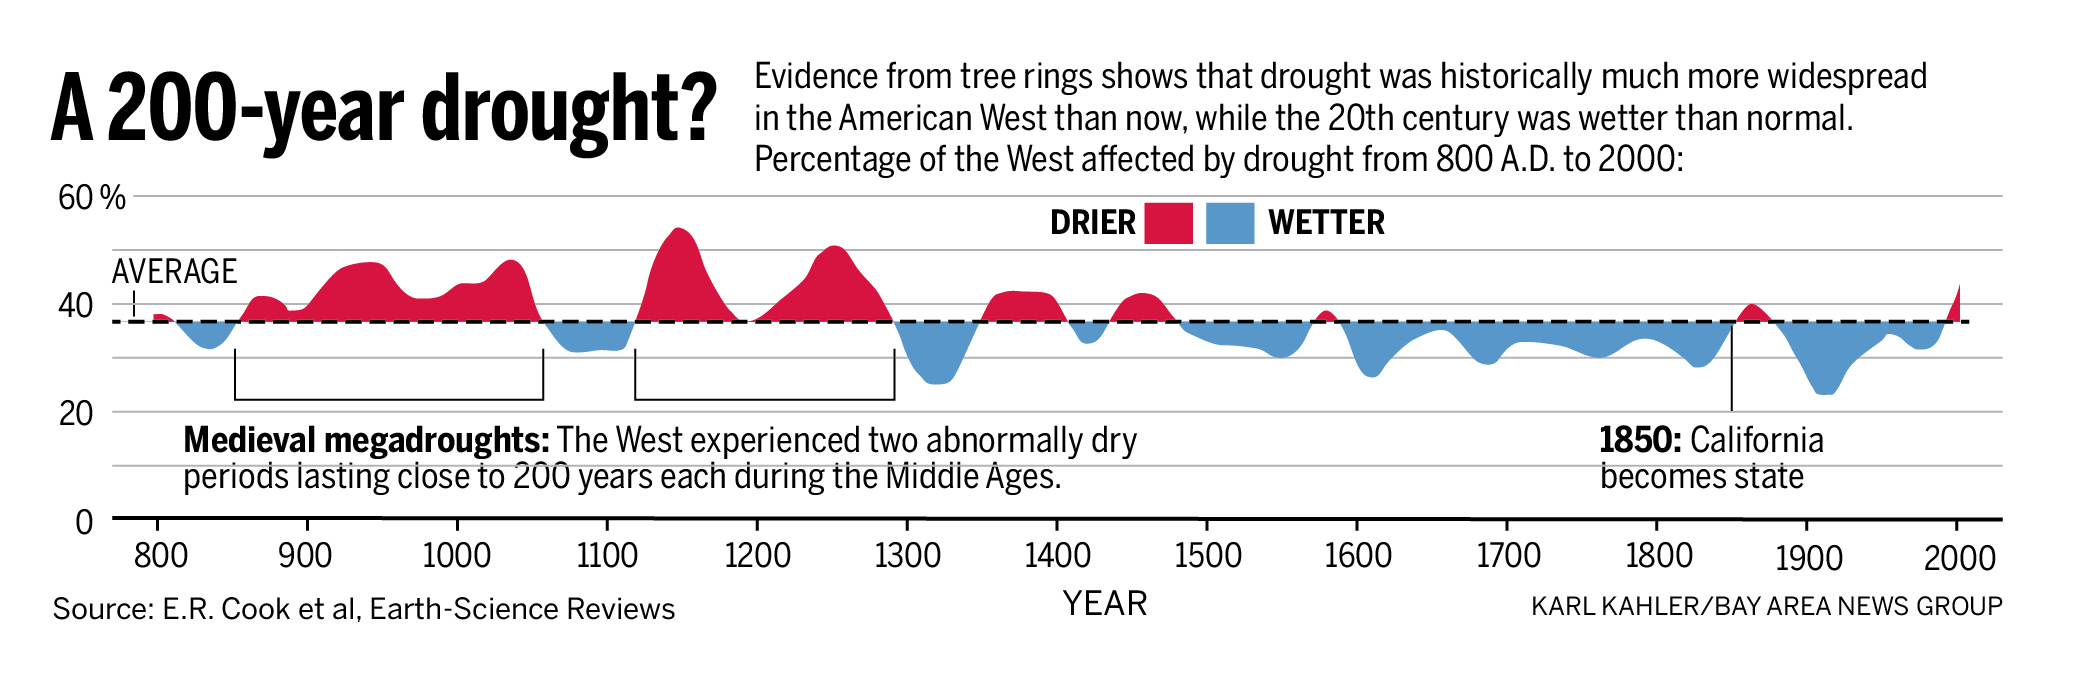 http://www.mercurynews.com/science/ci_24993601/california-drought-past-dry-periods-have-lasted-more